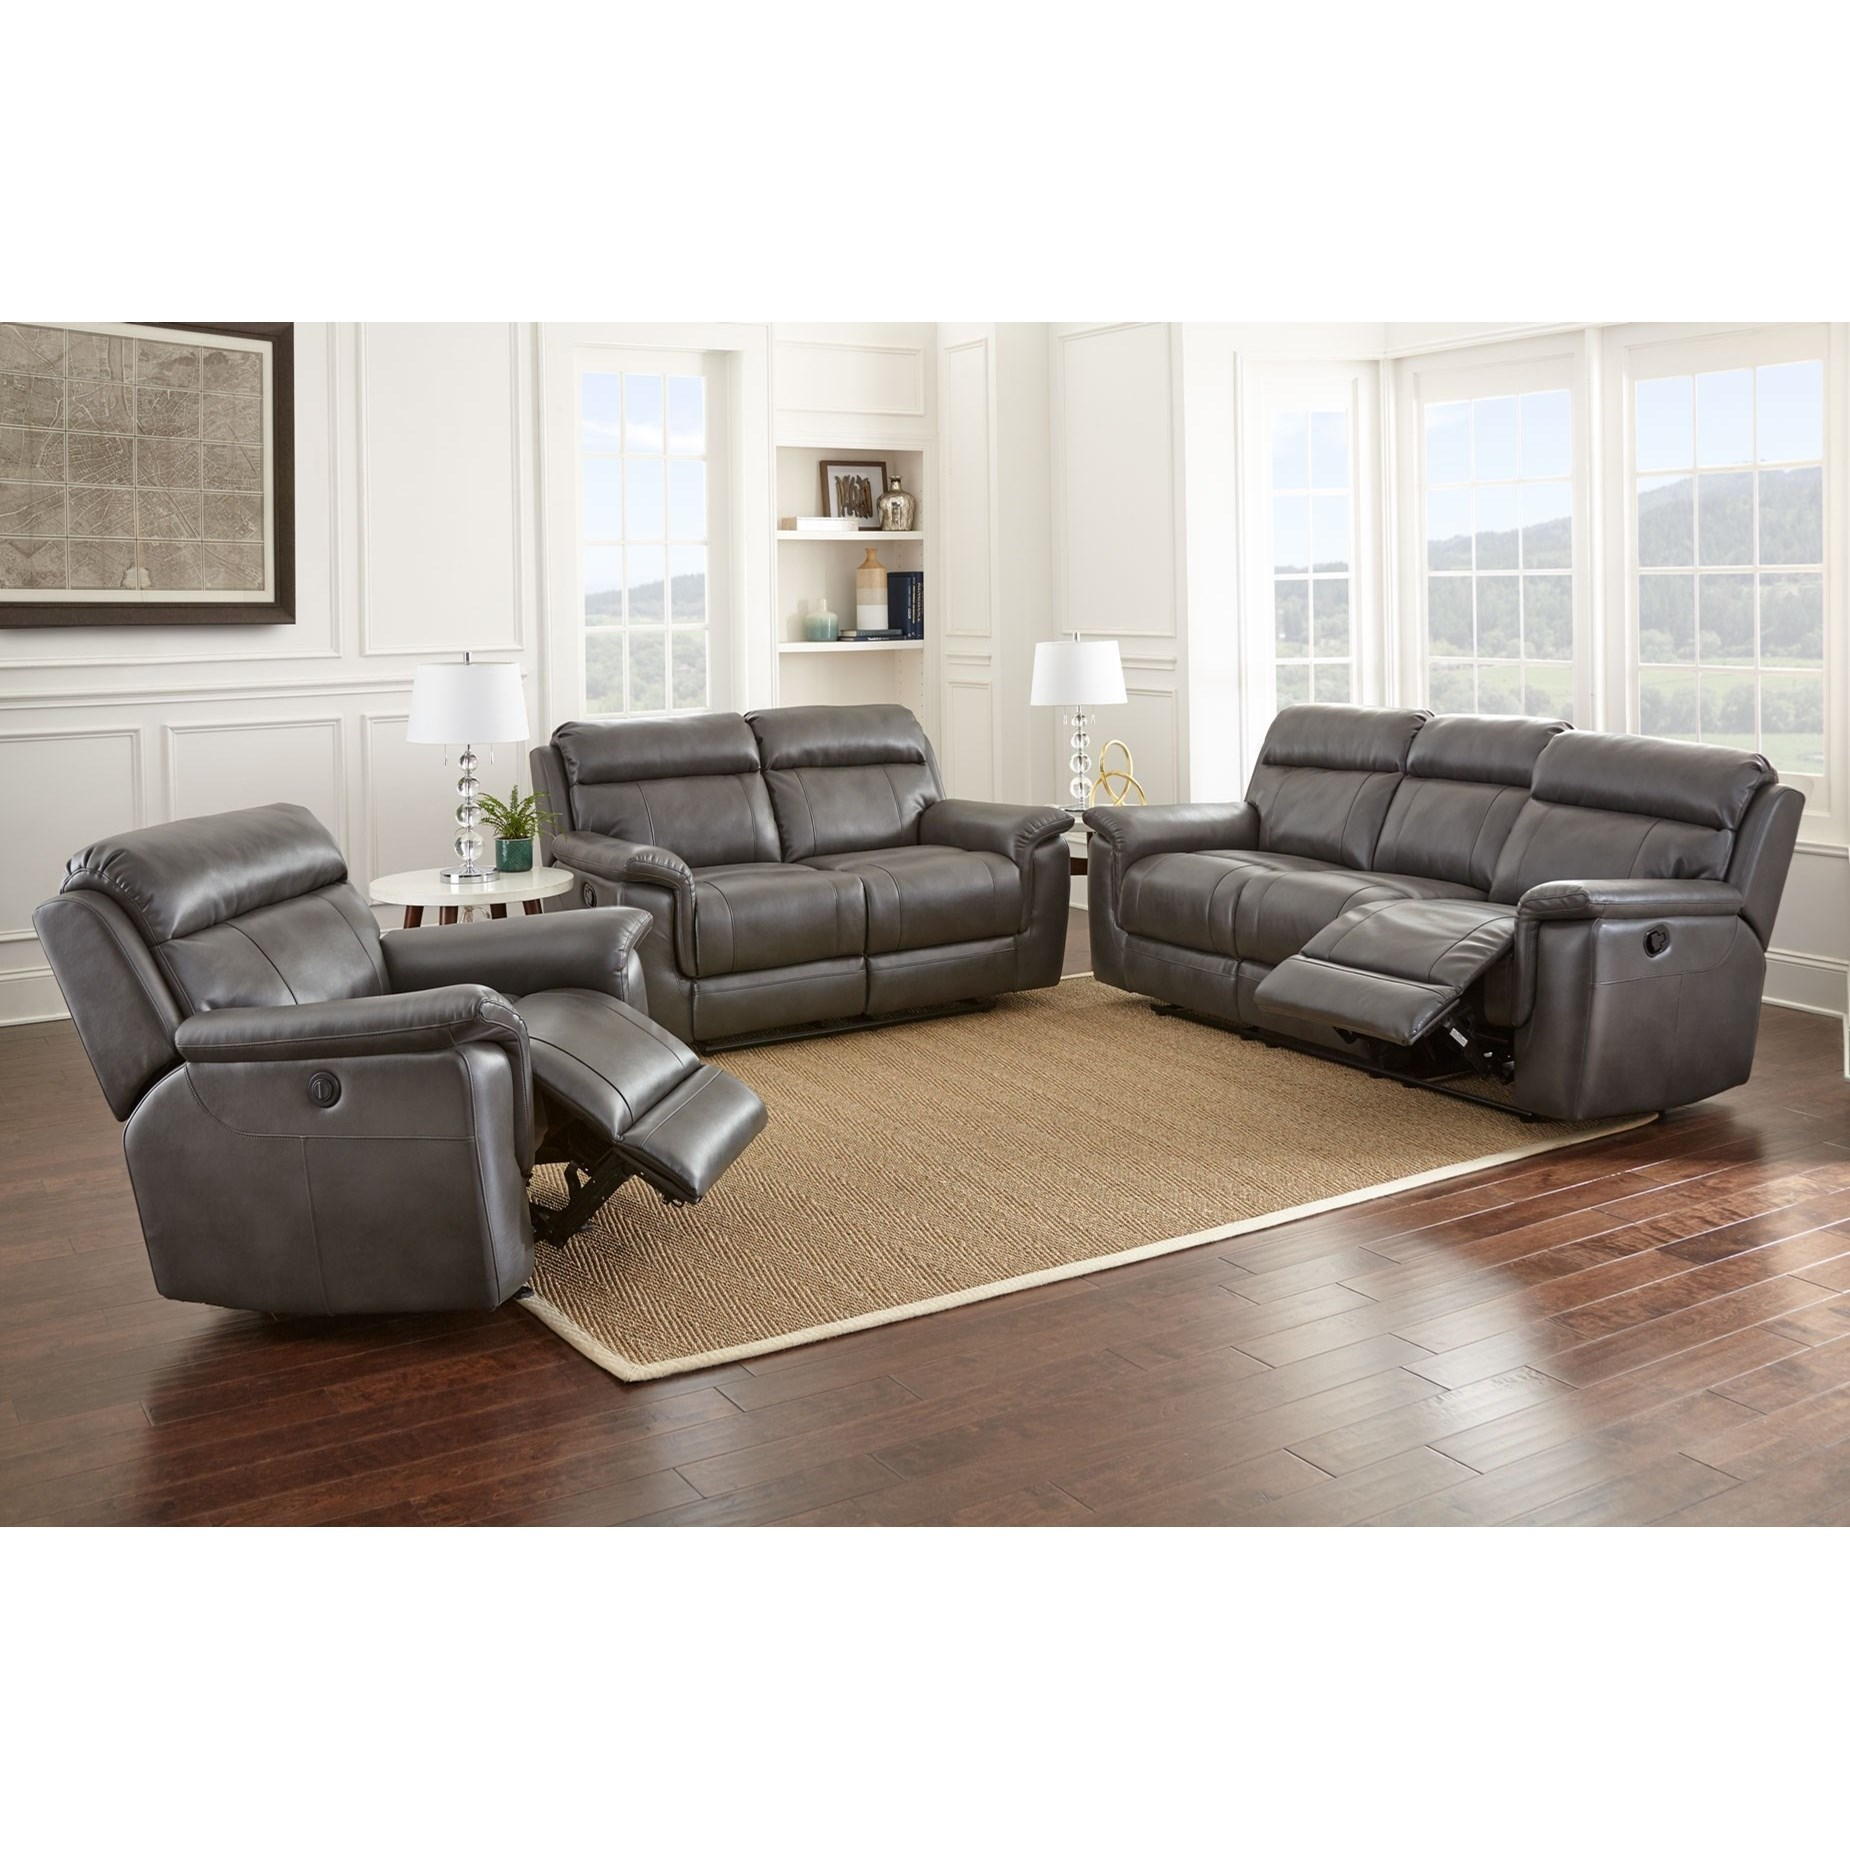 liberty 2 piece sofa and motion loveseat group in grey small armless steve silver dakota lay flat reclining darvin